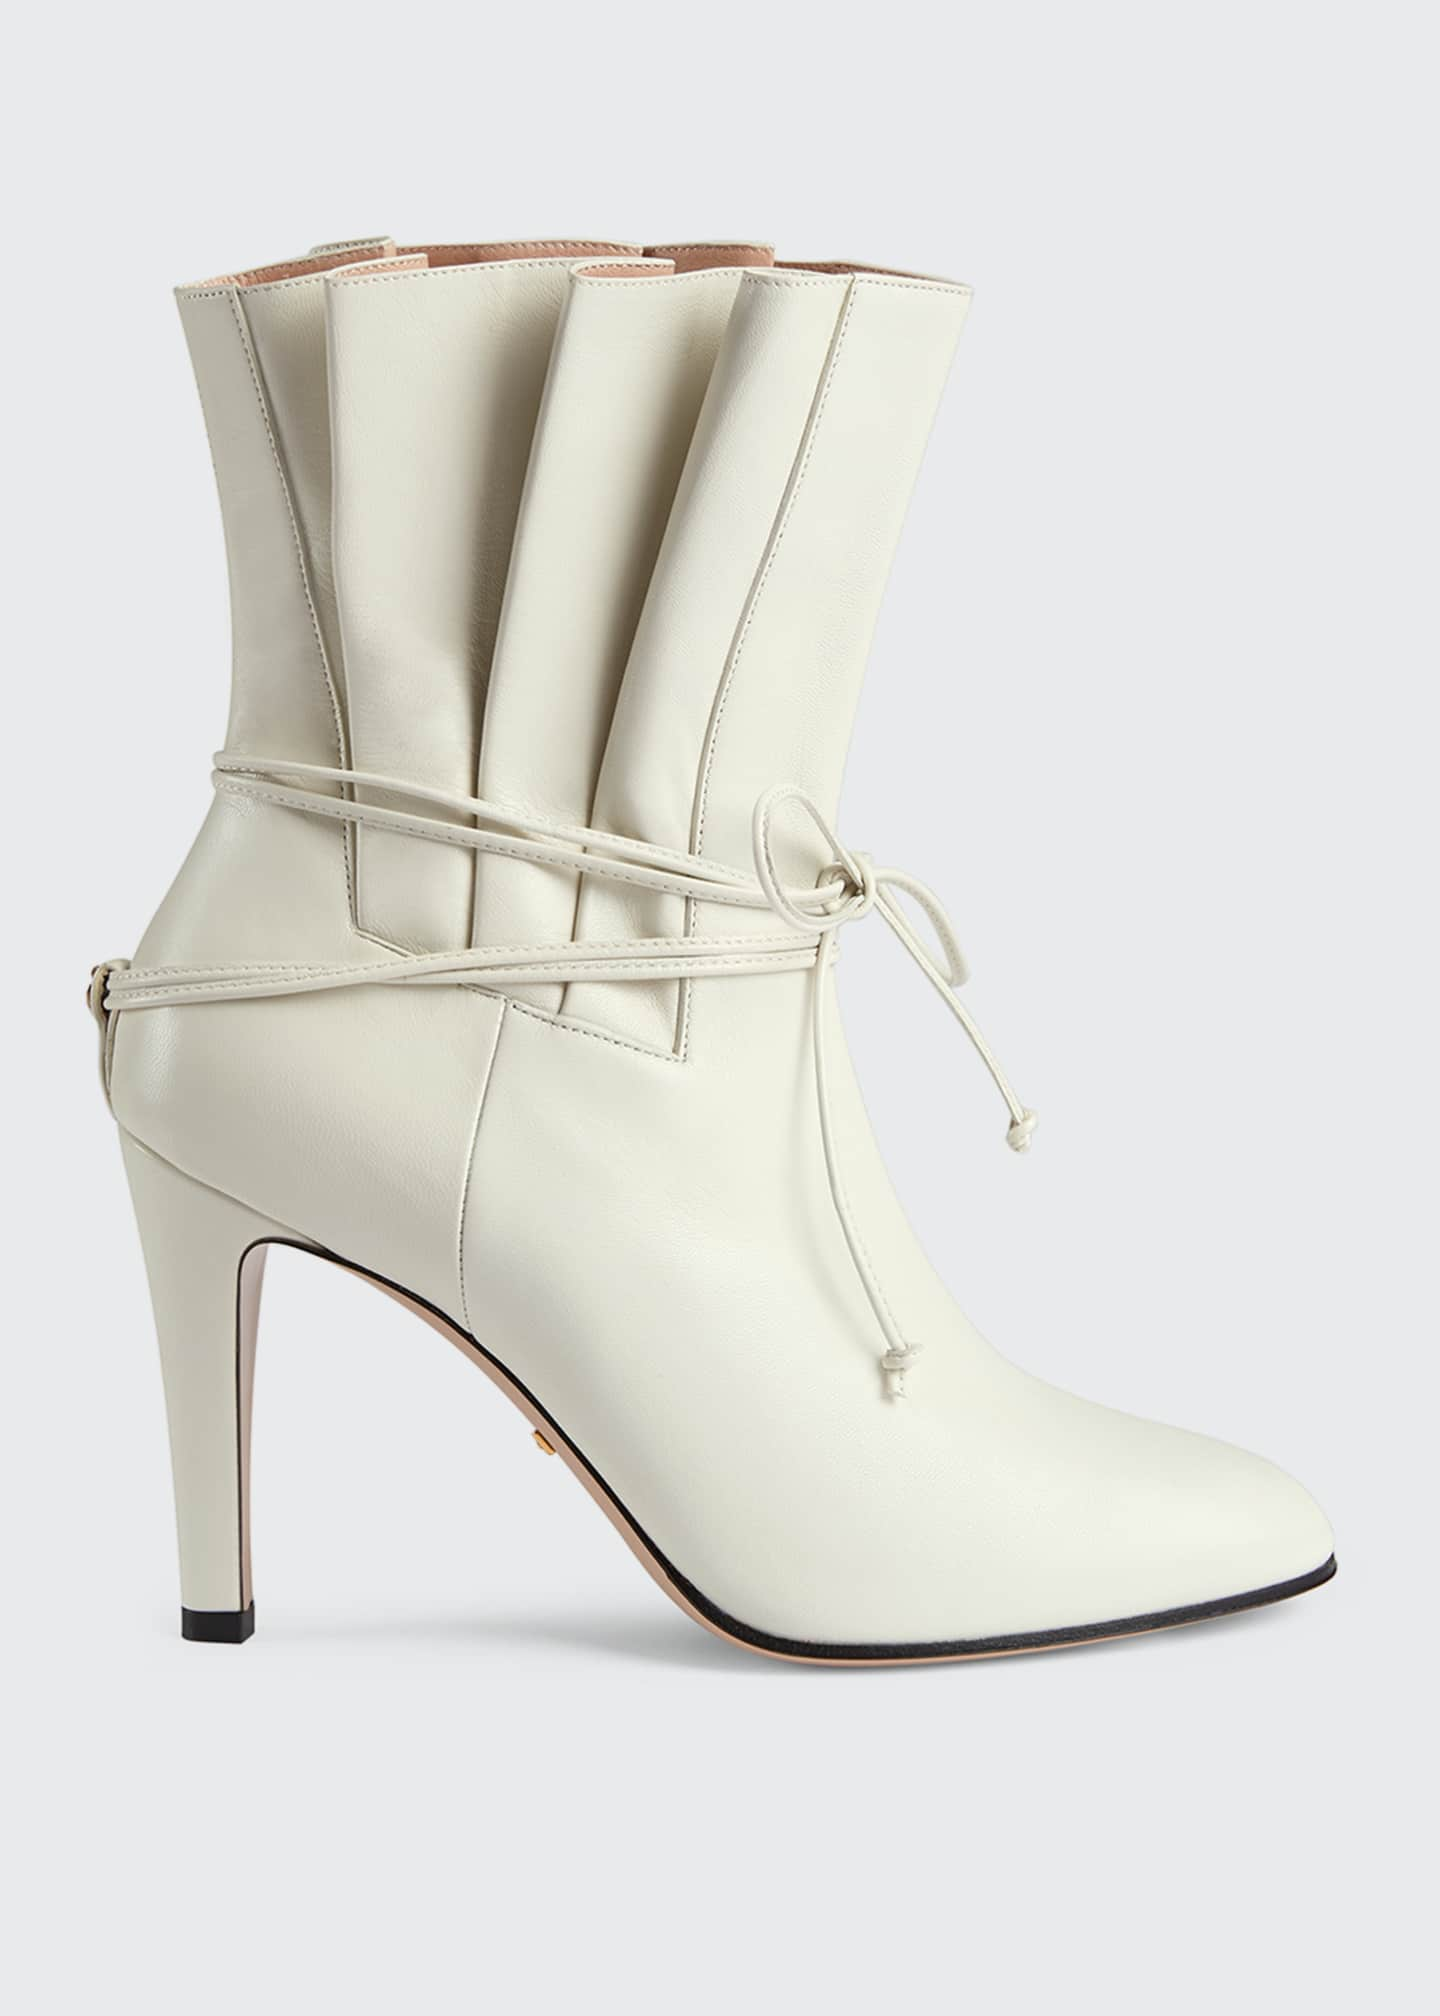 Gucci Indya 95mm Leather Pleated Tie Booties